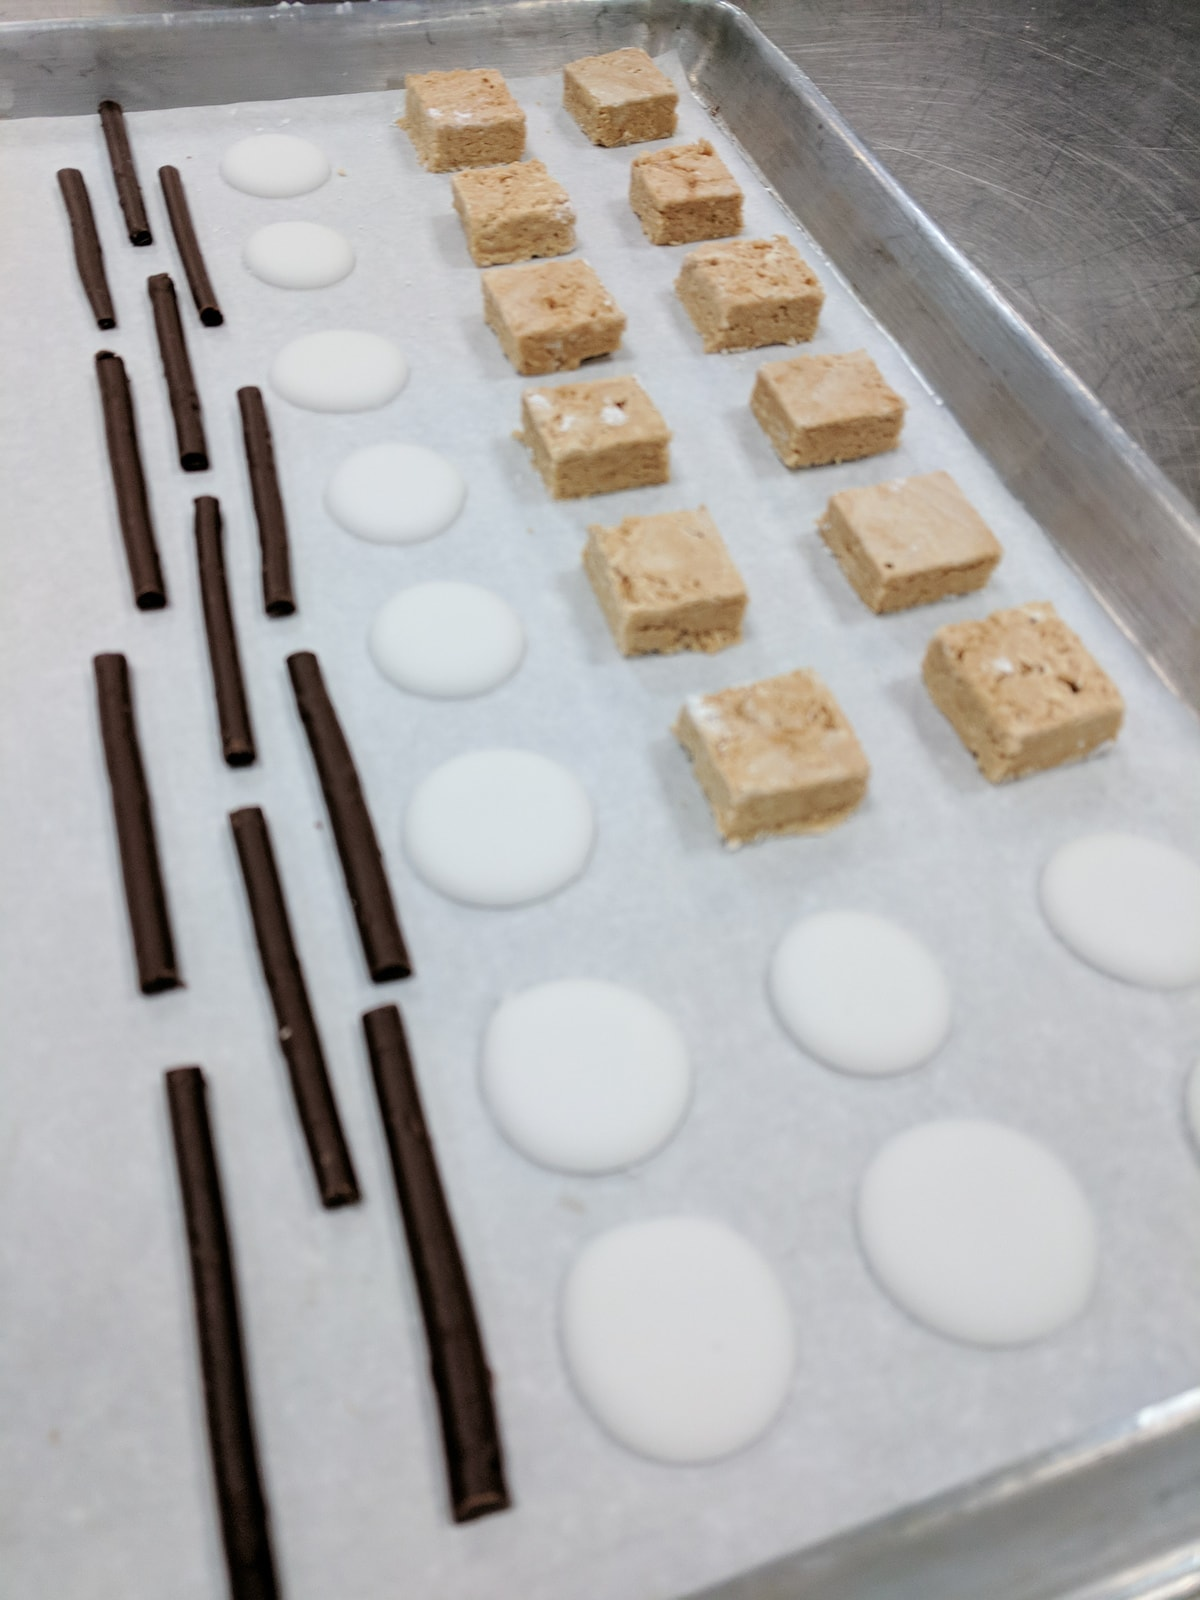 Confections on a sheet tray before being enrobed in chocolate